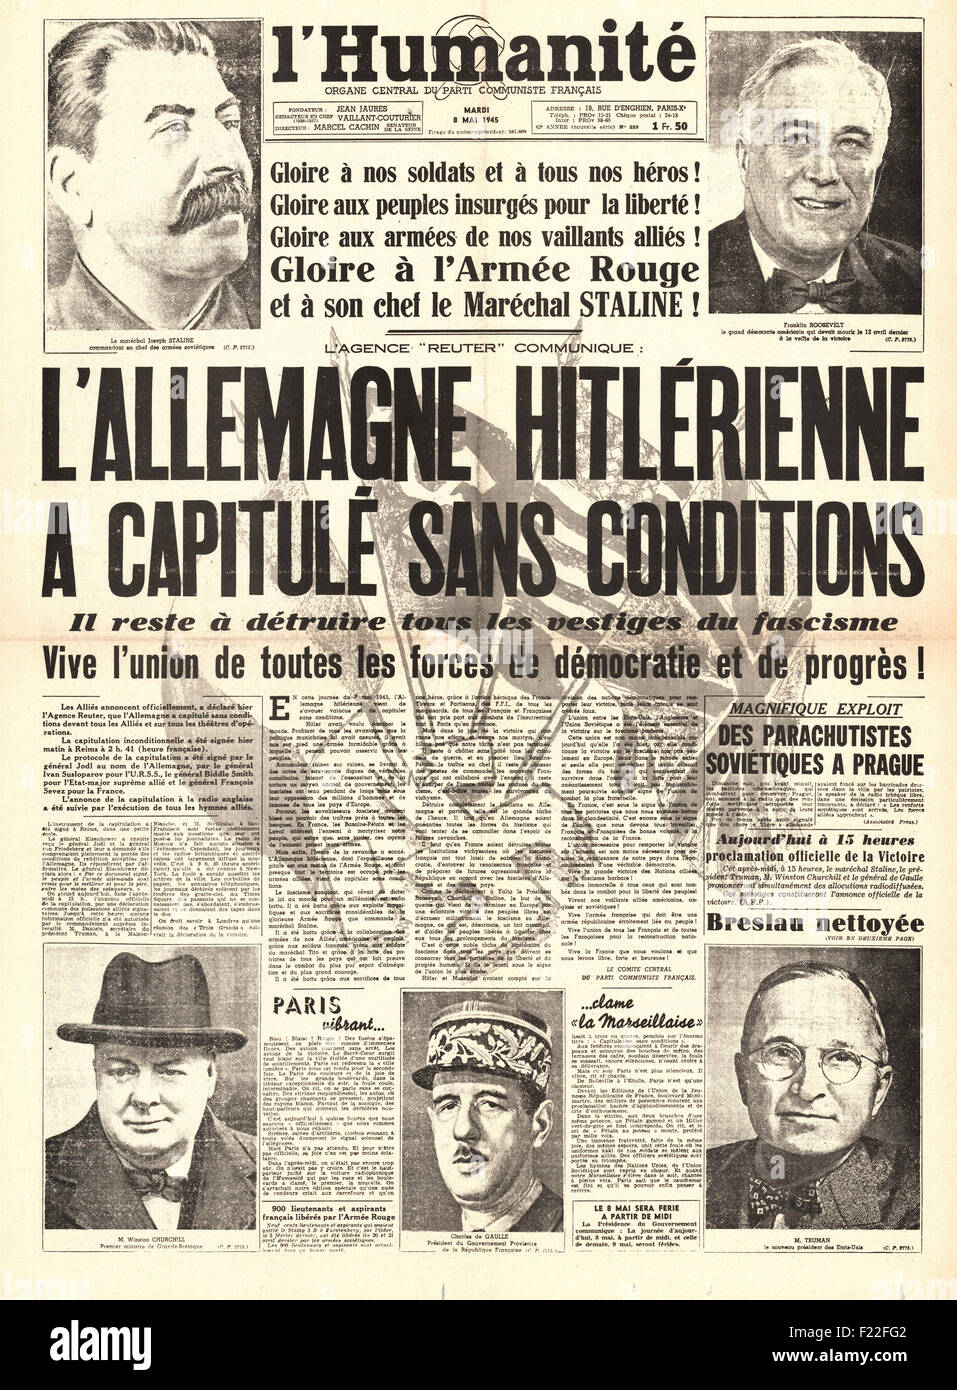 1945 L'Humanite (France) front page reporting VE Day - Stock Image